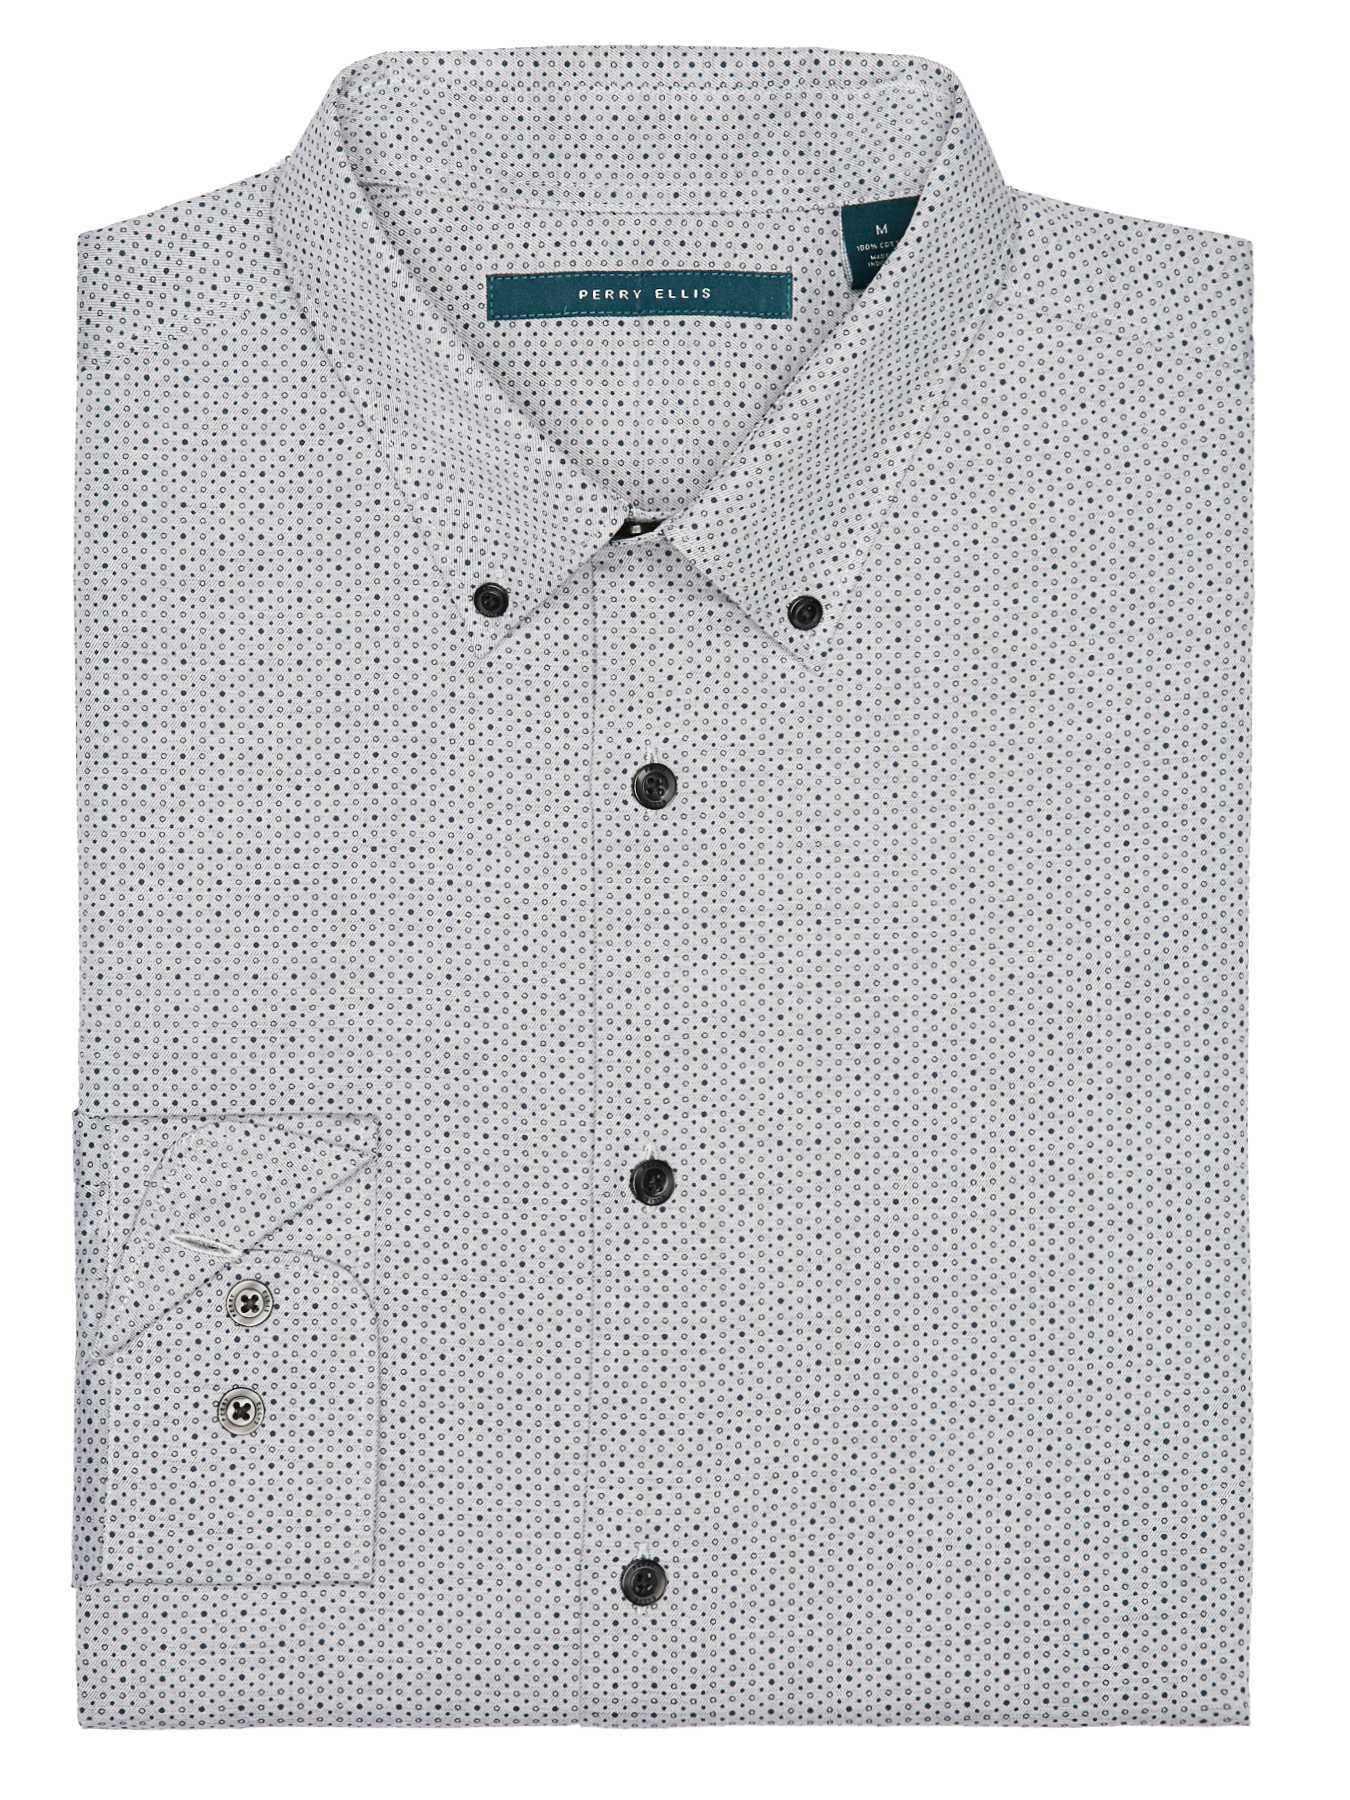 Perry Ellis Exclusive Heather Dot Print Shirt